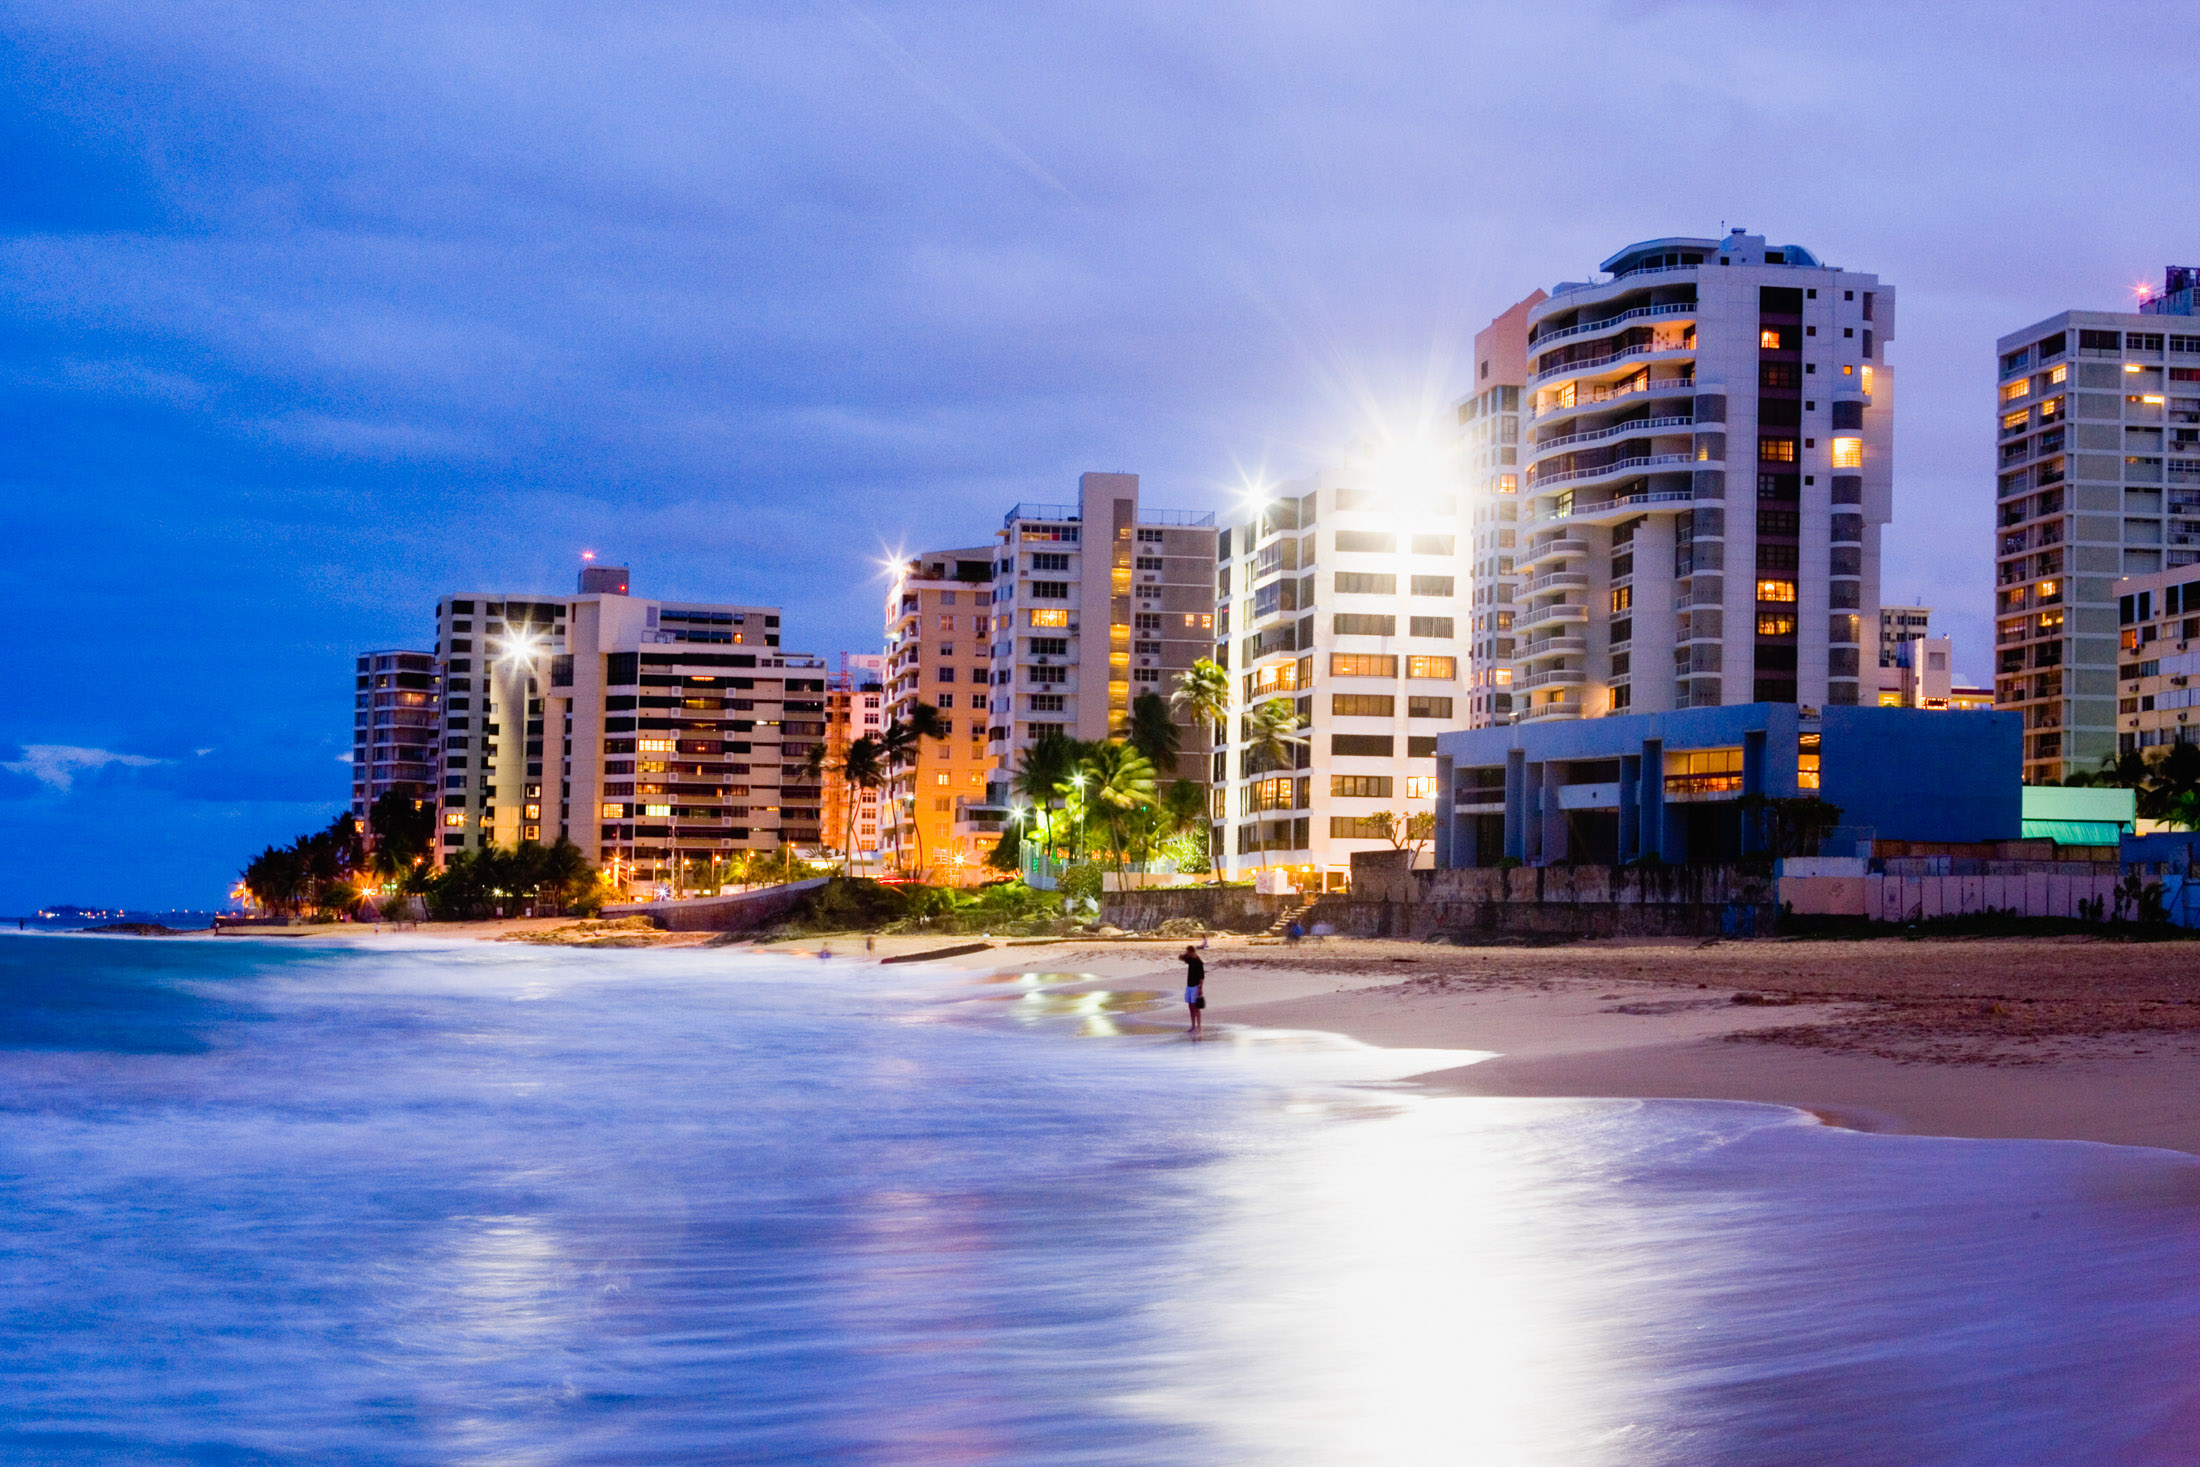 Resort Hotels Along Condado Beach in San Juan